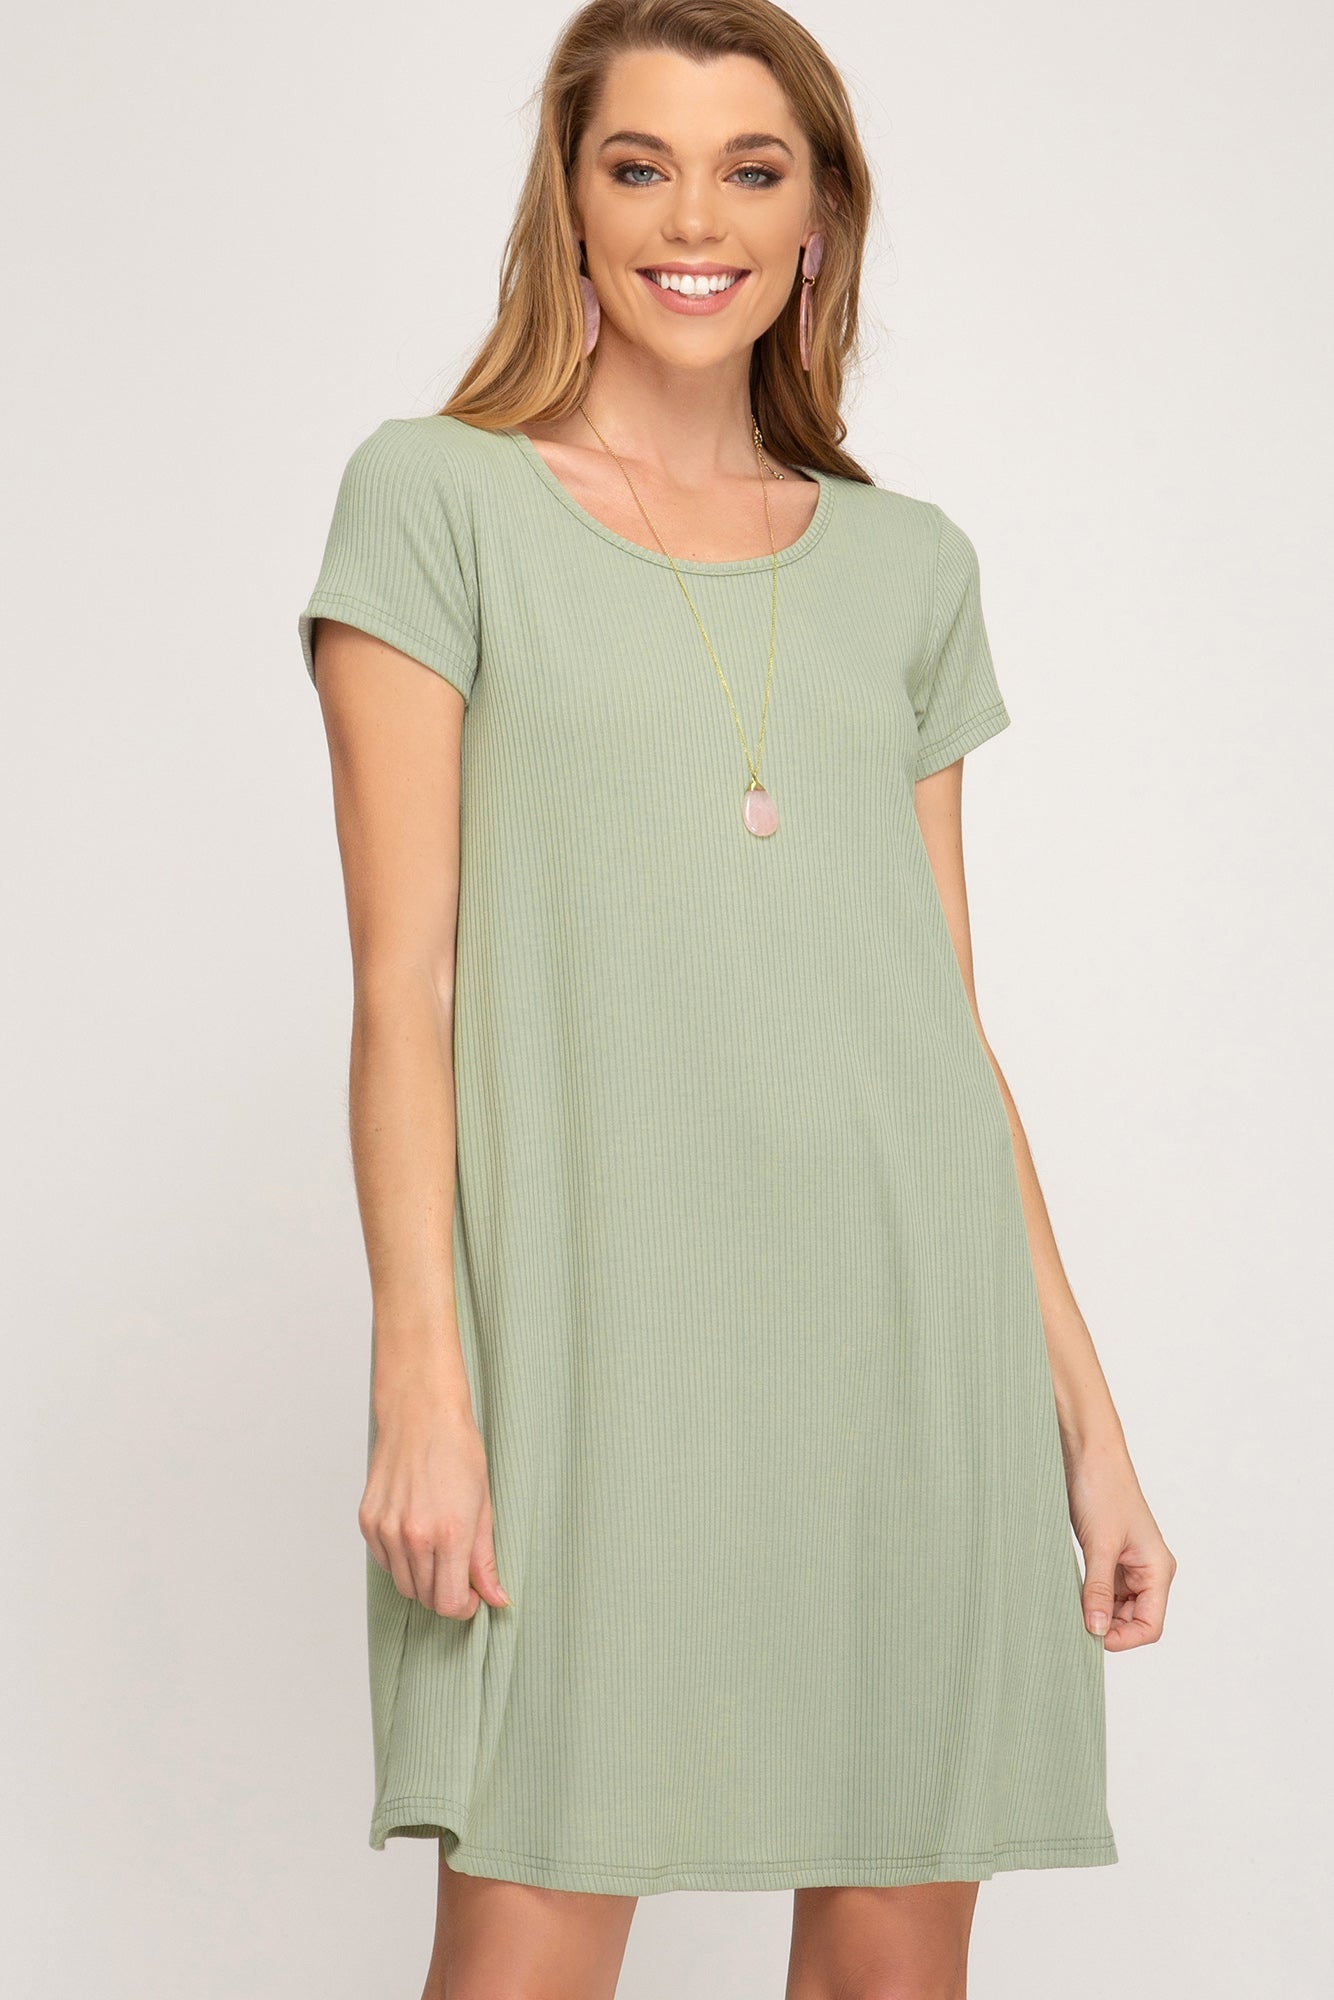 SHORT SLEEVE BASIC RIB KNIT DRESS